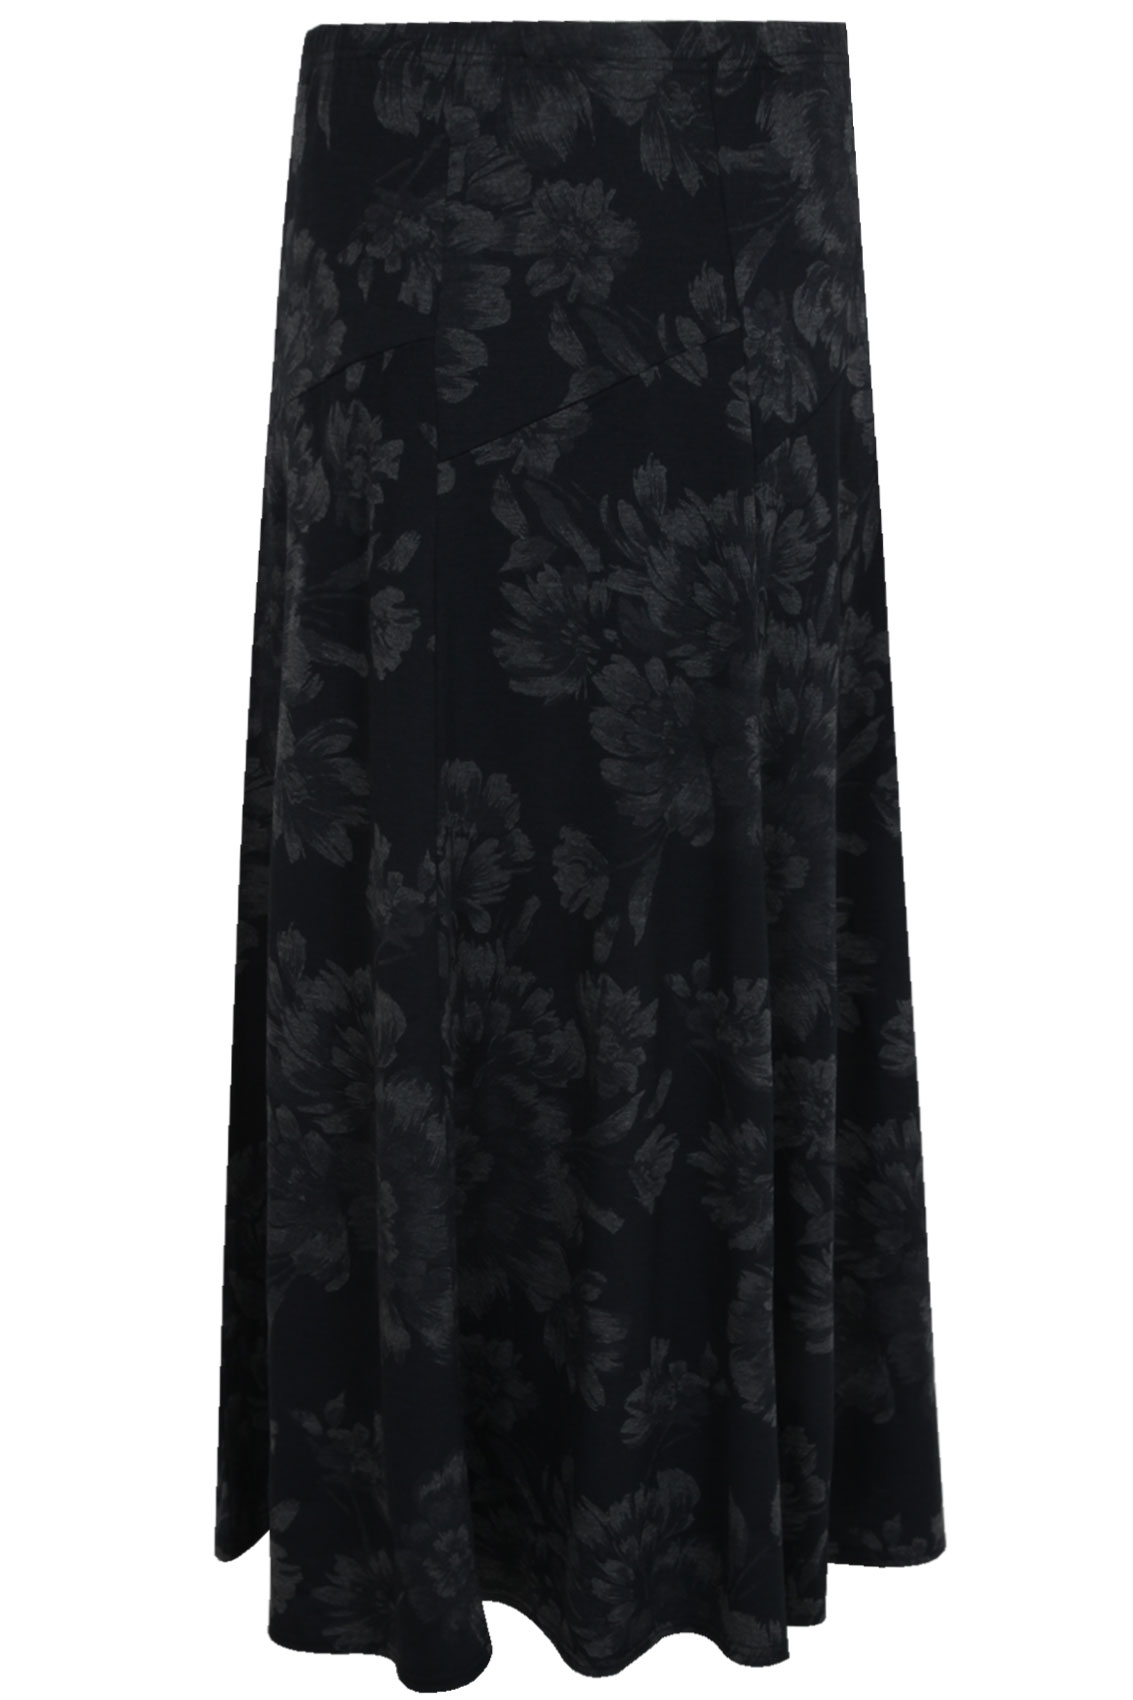 black grey floral jersey maxi skirt with abstract panel